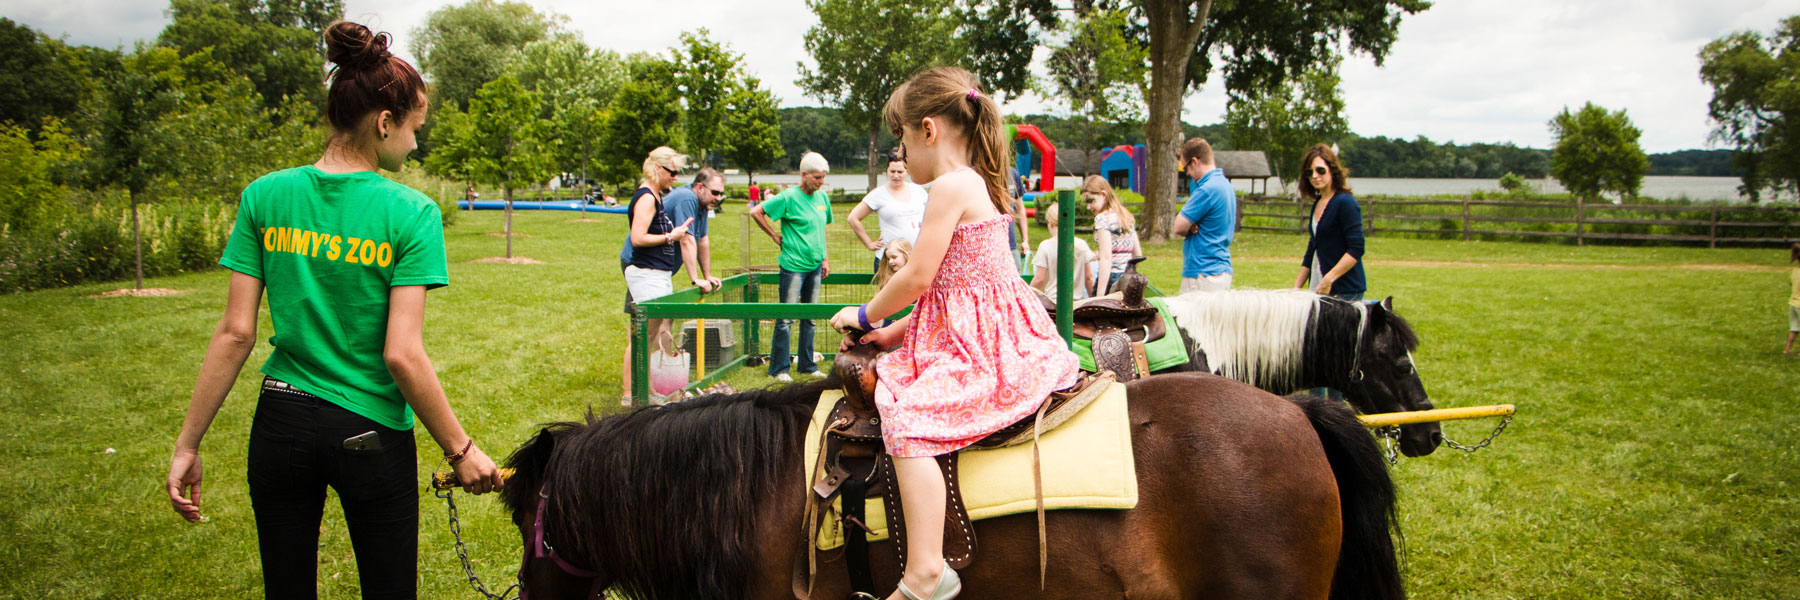 girl riding horse at Long Lake community event